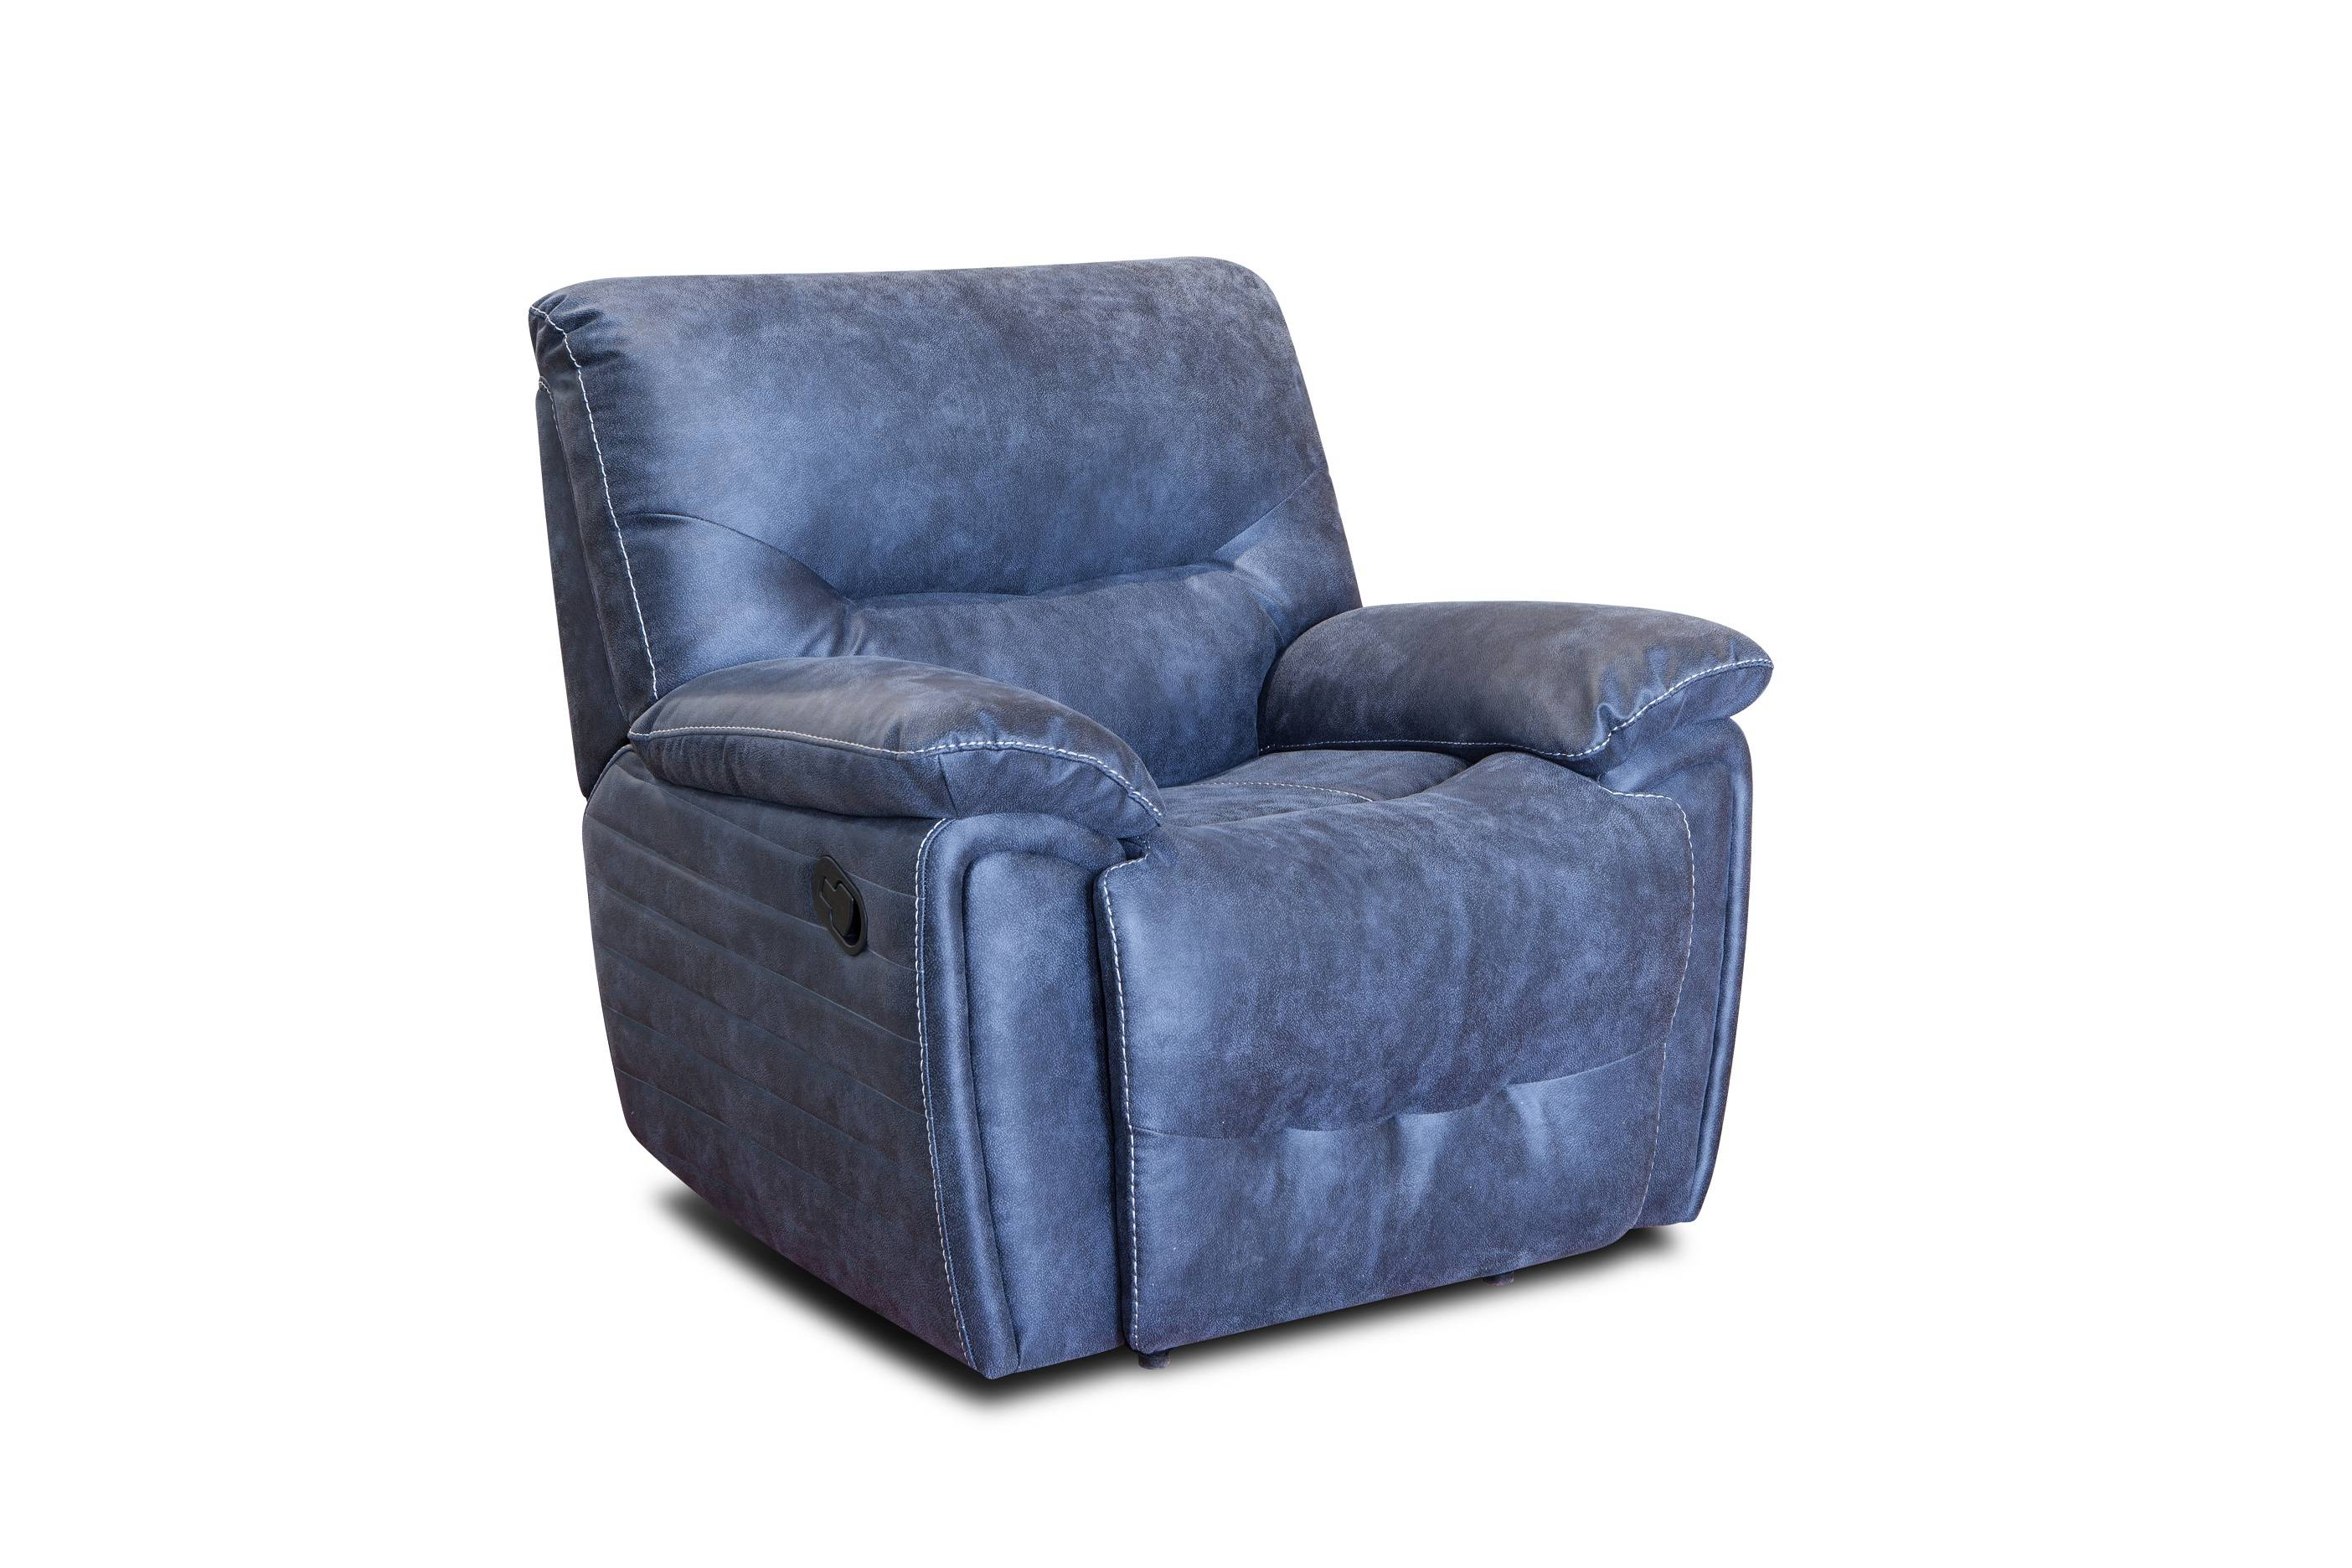 Functional 1+2+3 blue leather recliner living room sofa set